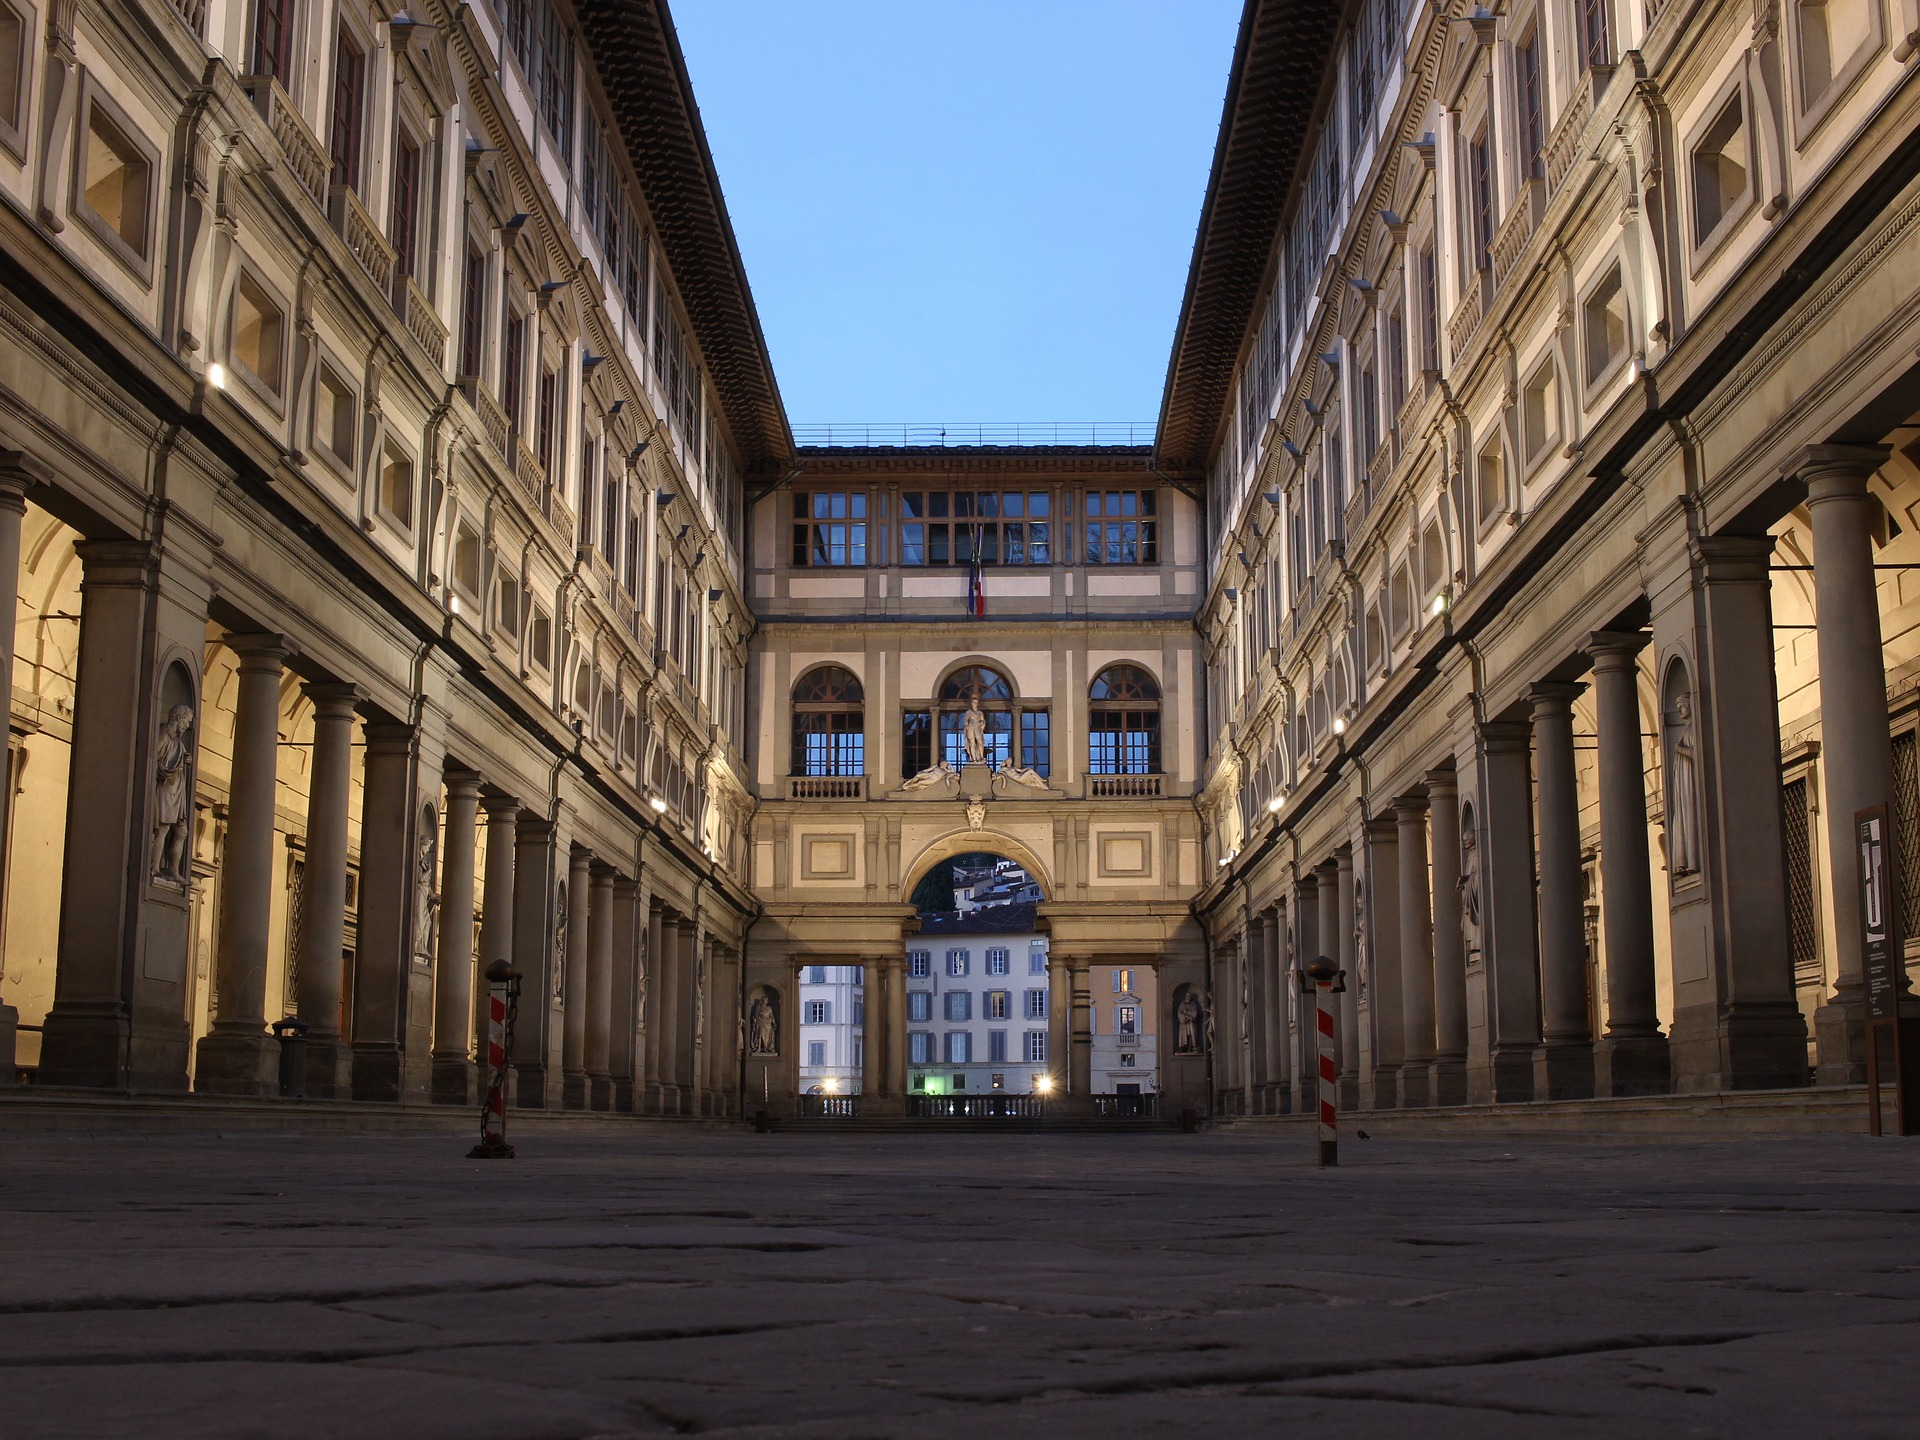 Uffizi Gallery, Museum in Florence, Italy